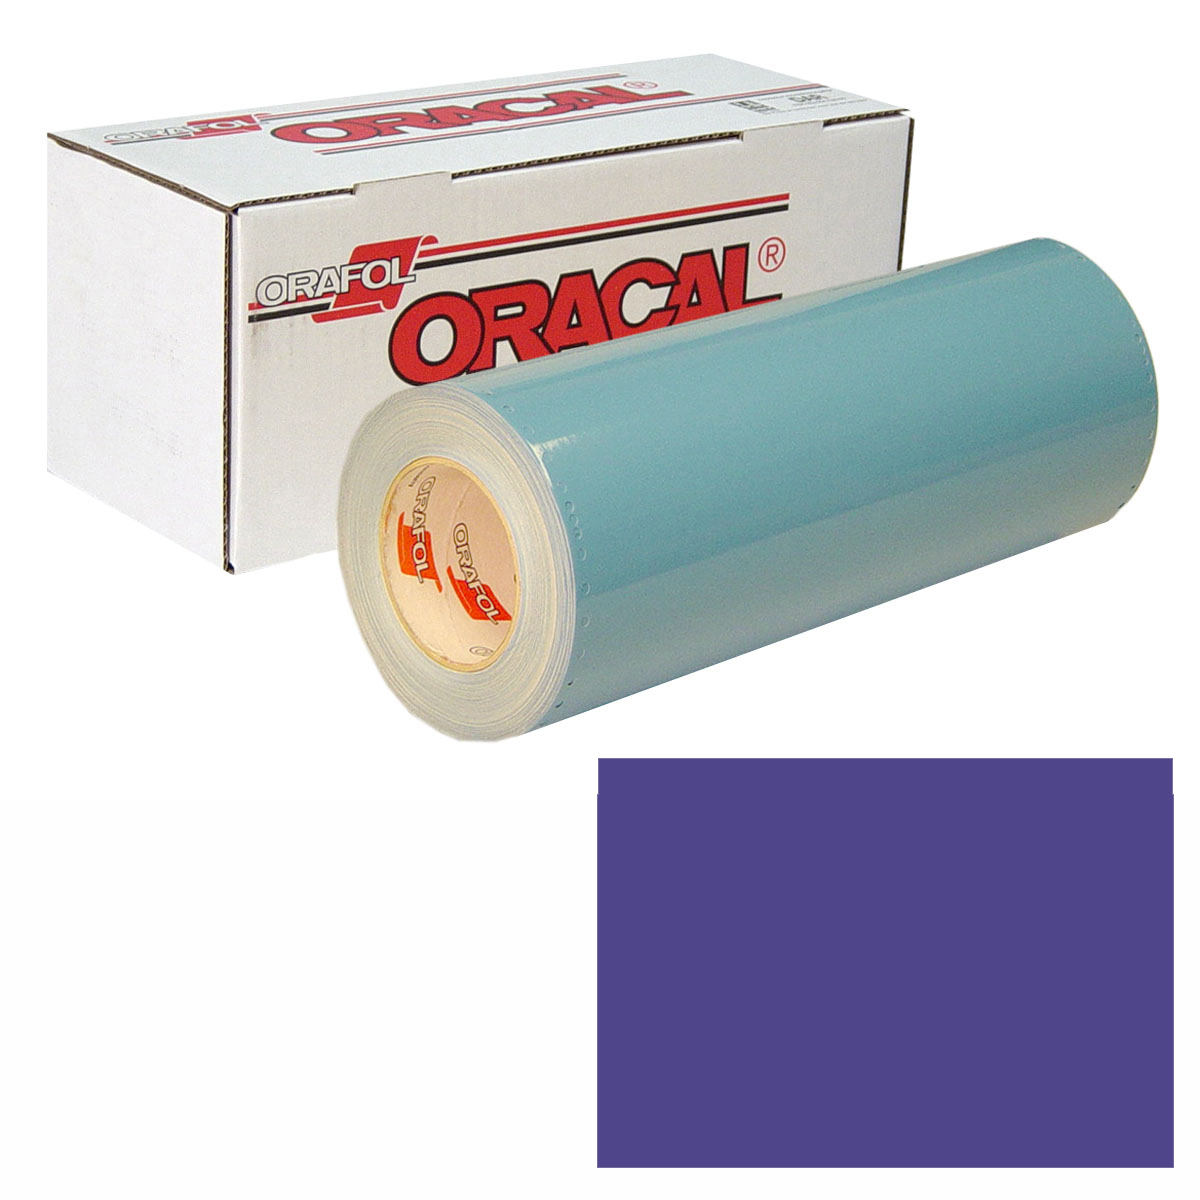 ORACAL 751 Unp 48in X 10yd 518 Steel Blue